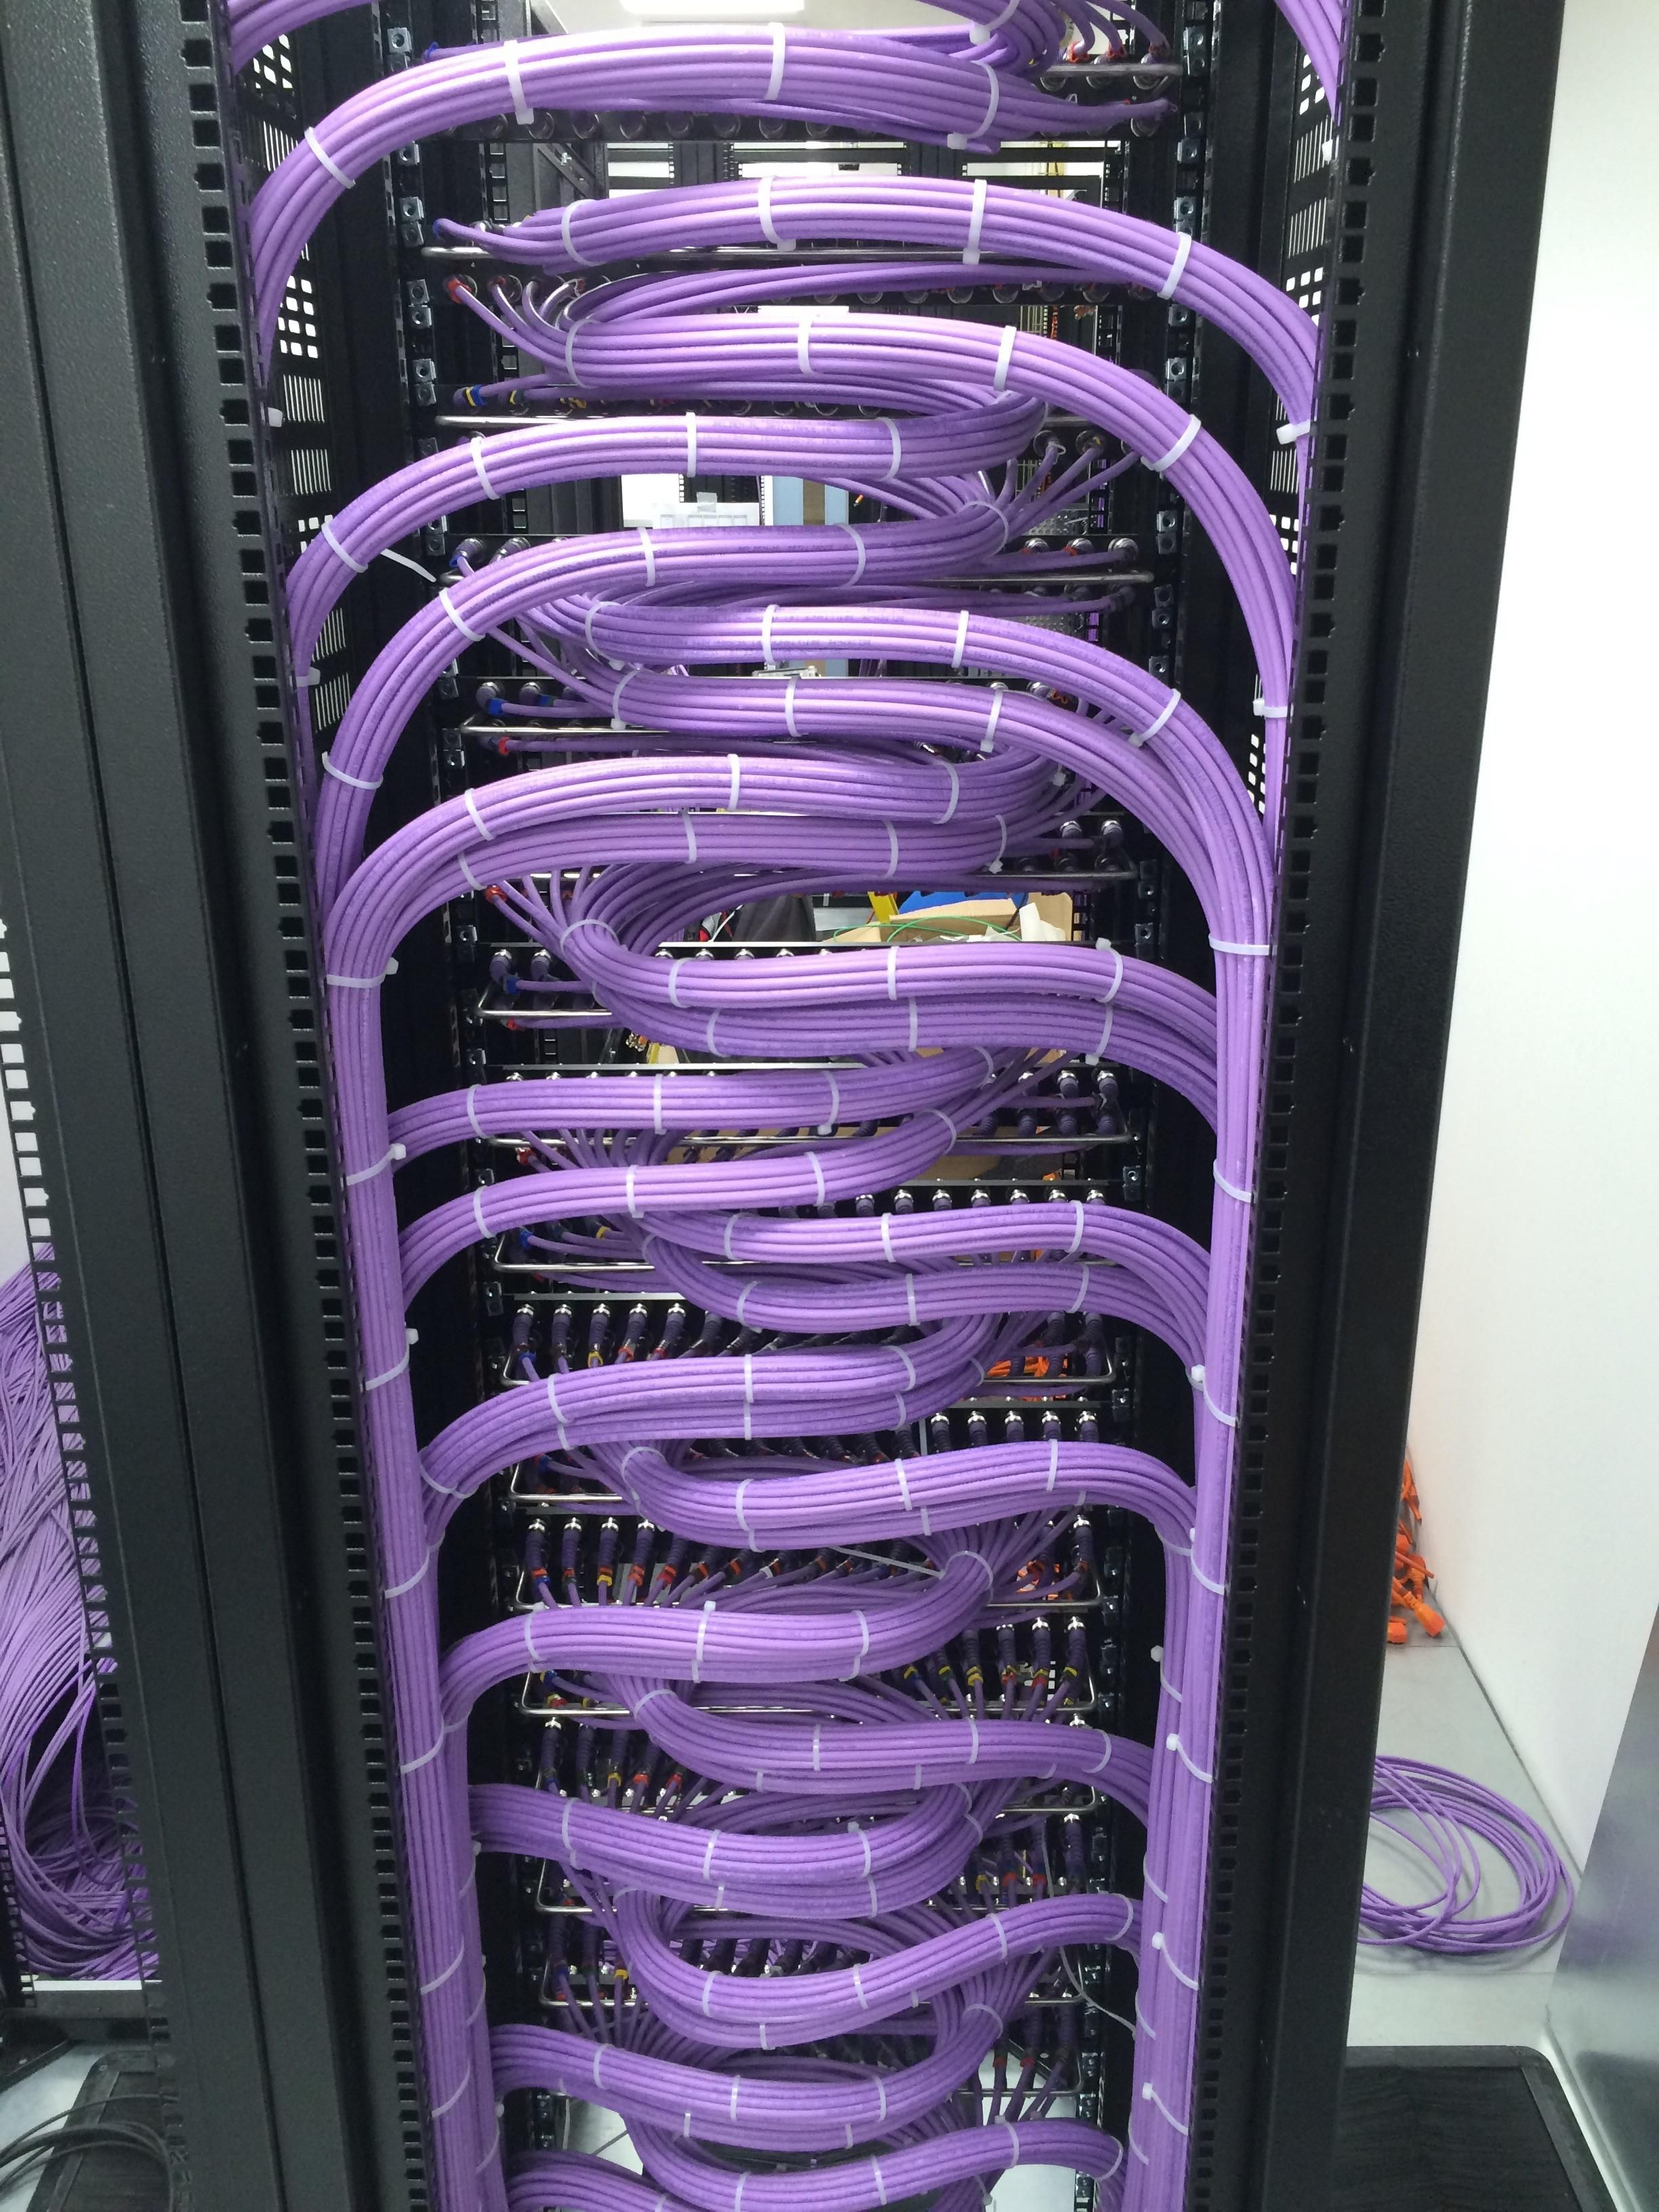 Cables cable management structured cabling cable